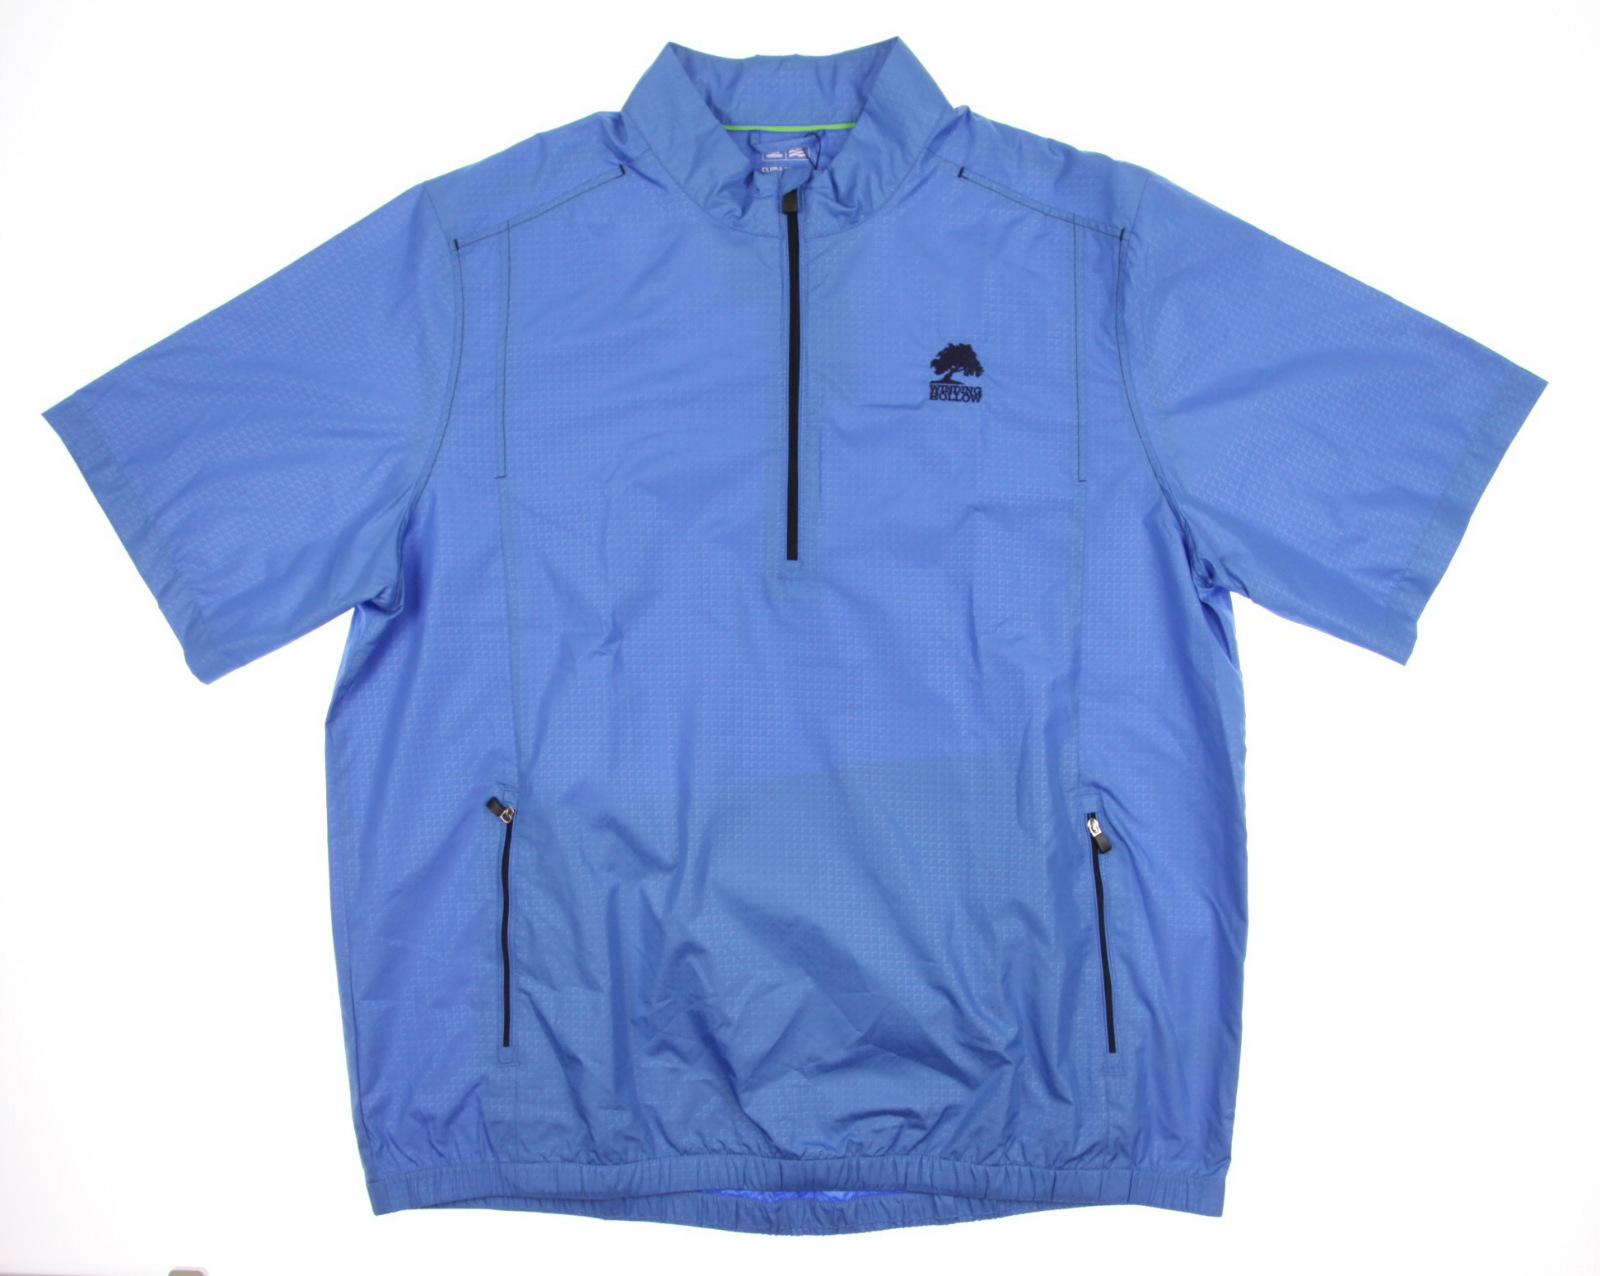 New men 39 s adidas climaproof windshirt rain blue xl ss for Adidas golf rain shirt